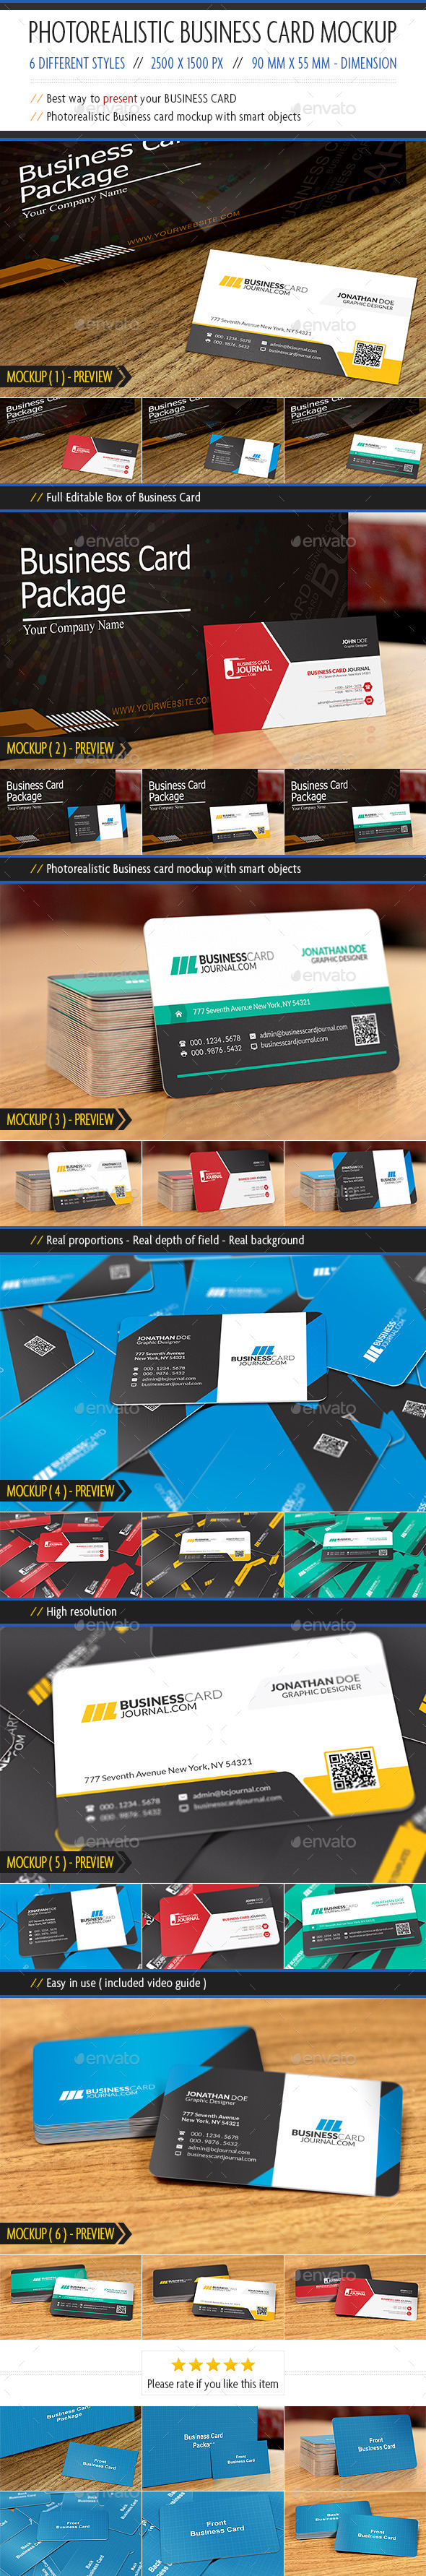 GraphicRiver Photorealistic Business card Mockup 10685263